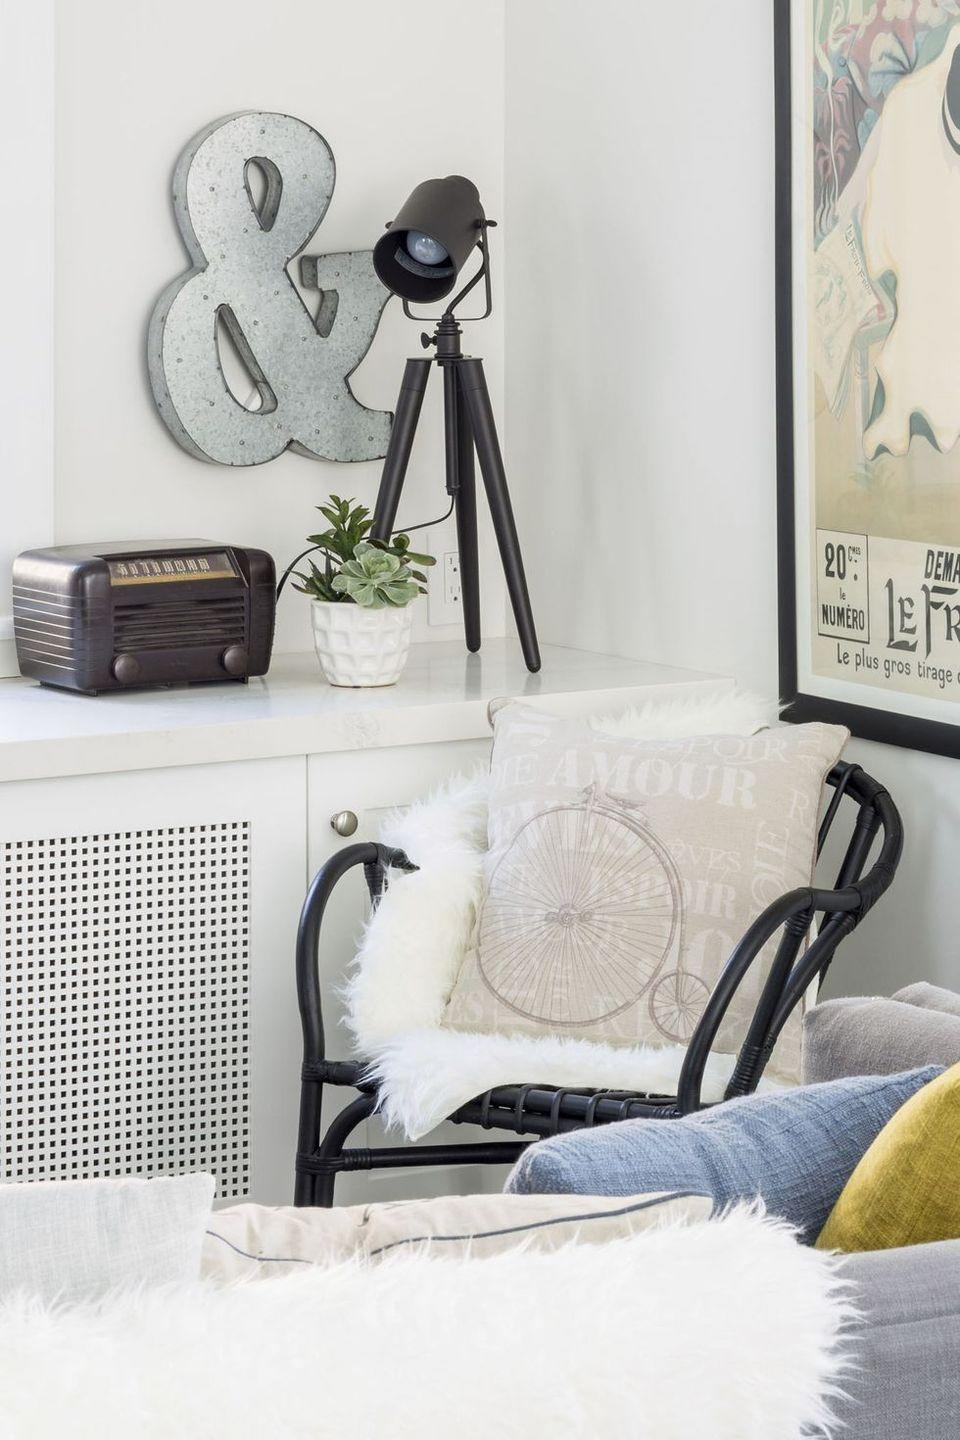 <p>This reading nook benefits from tripod-style lighting and seating dressed in a cozy white rug. </p>